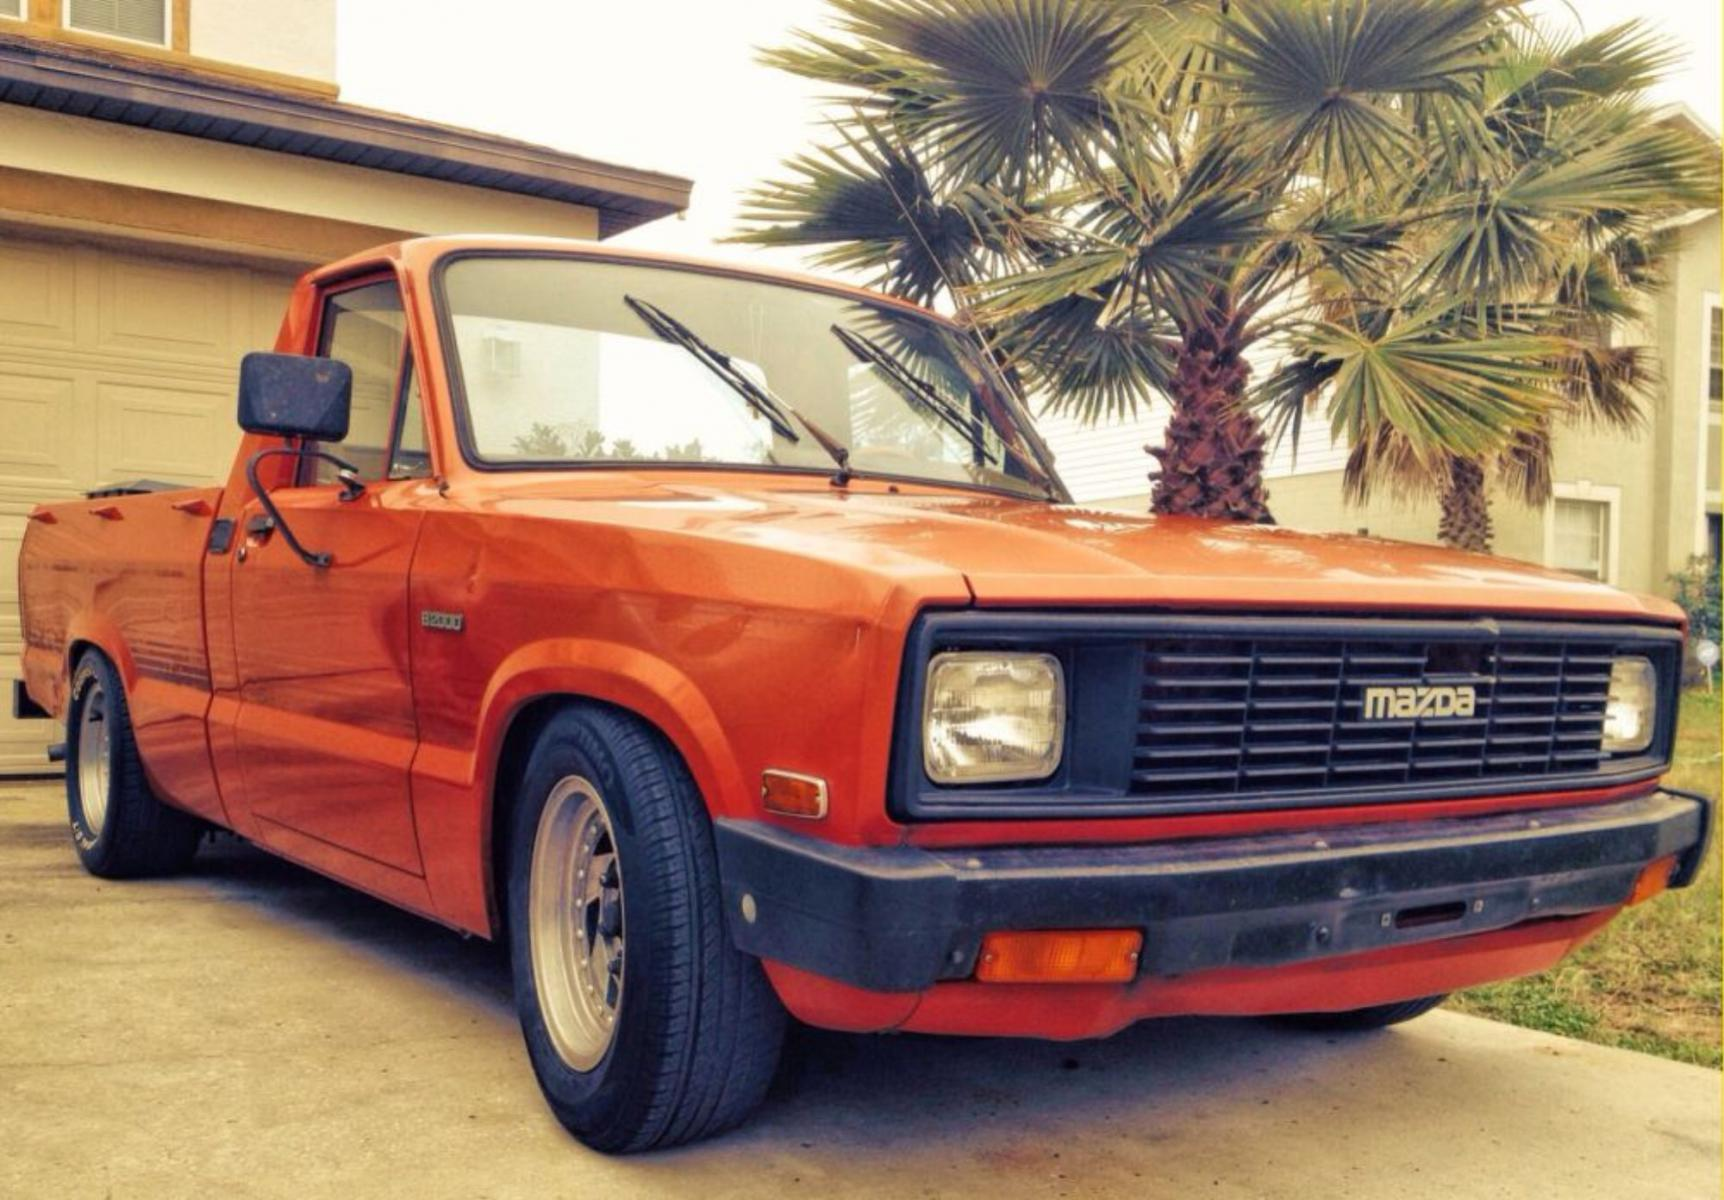 1984 Mazda B2000 Mazda Forum. Full resolution‎  file, nominally Width 1724 Height 1200 pixels, file with #A53626.